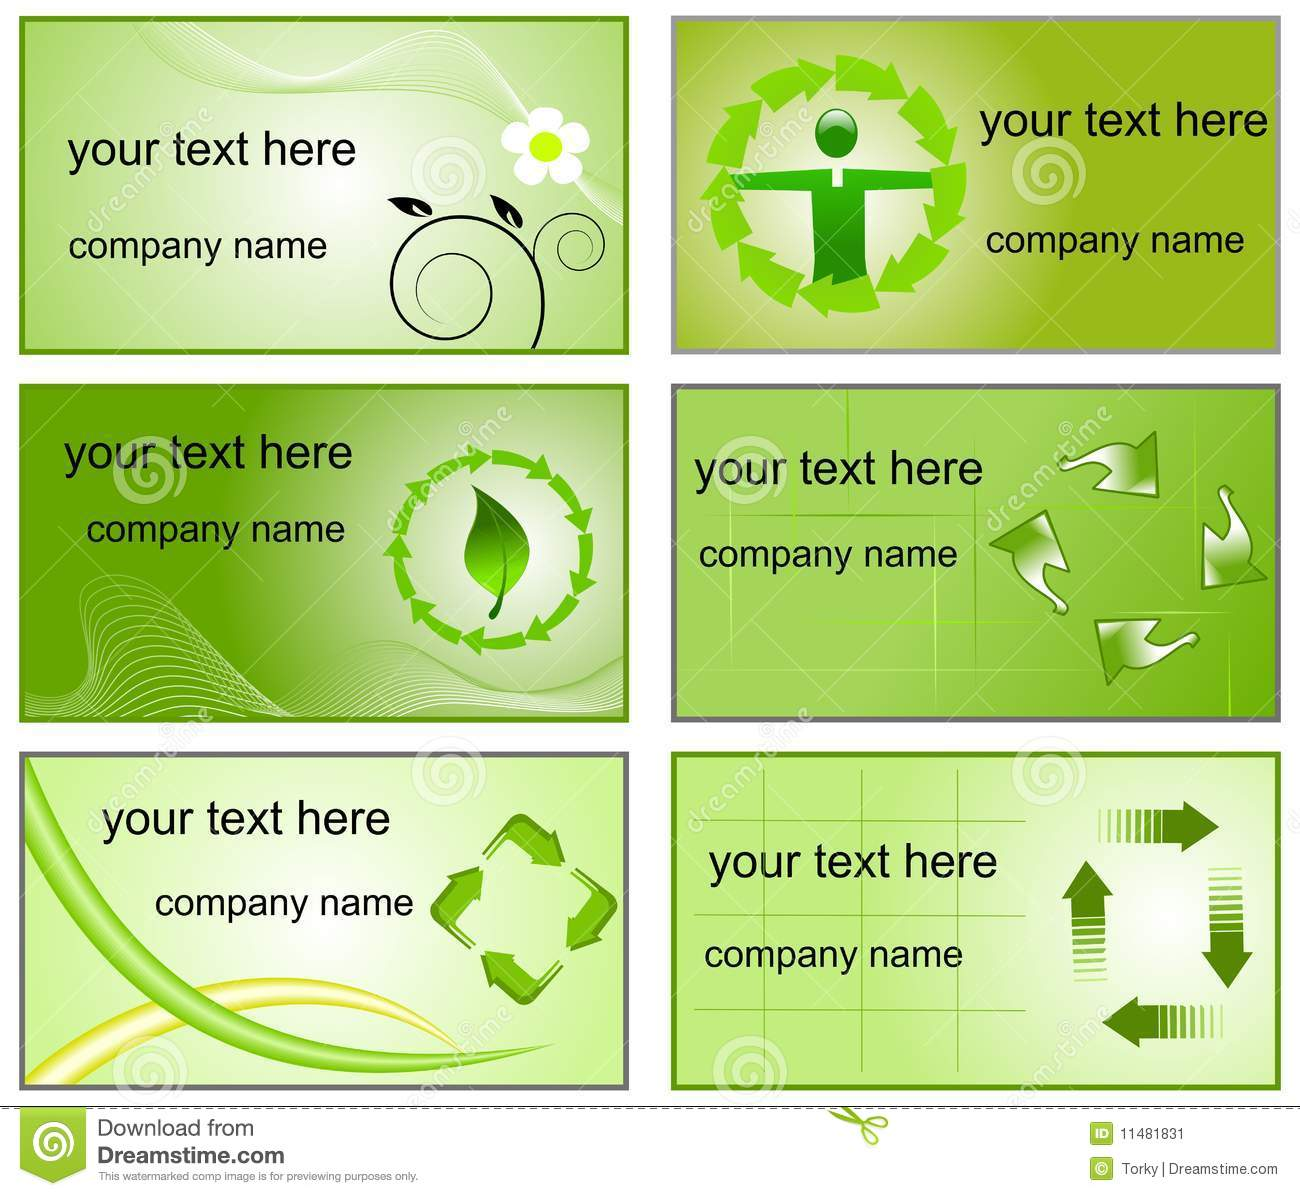 Recycling logos and business cards templates stock vector recycling logos and business cards templates colourmoves